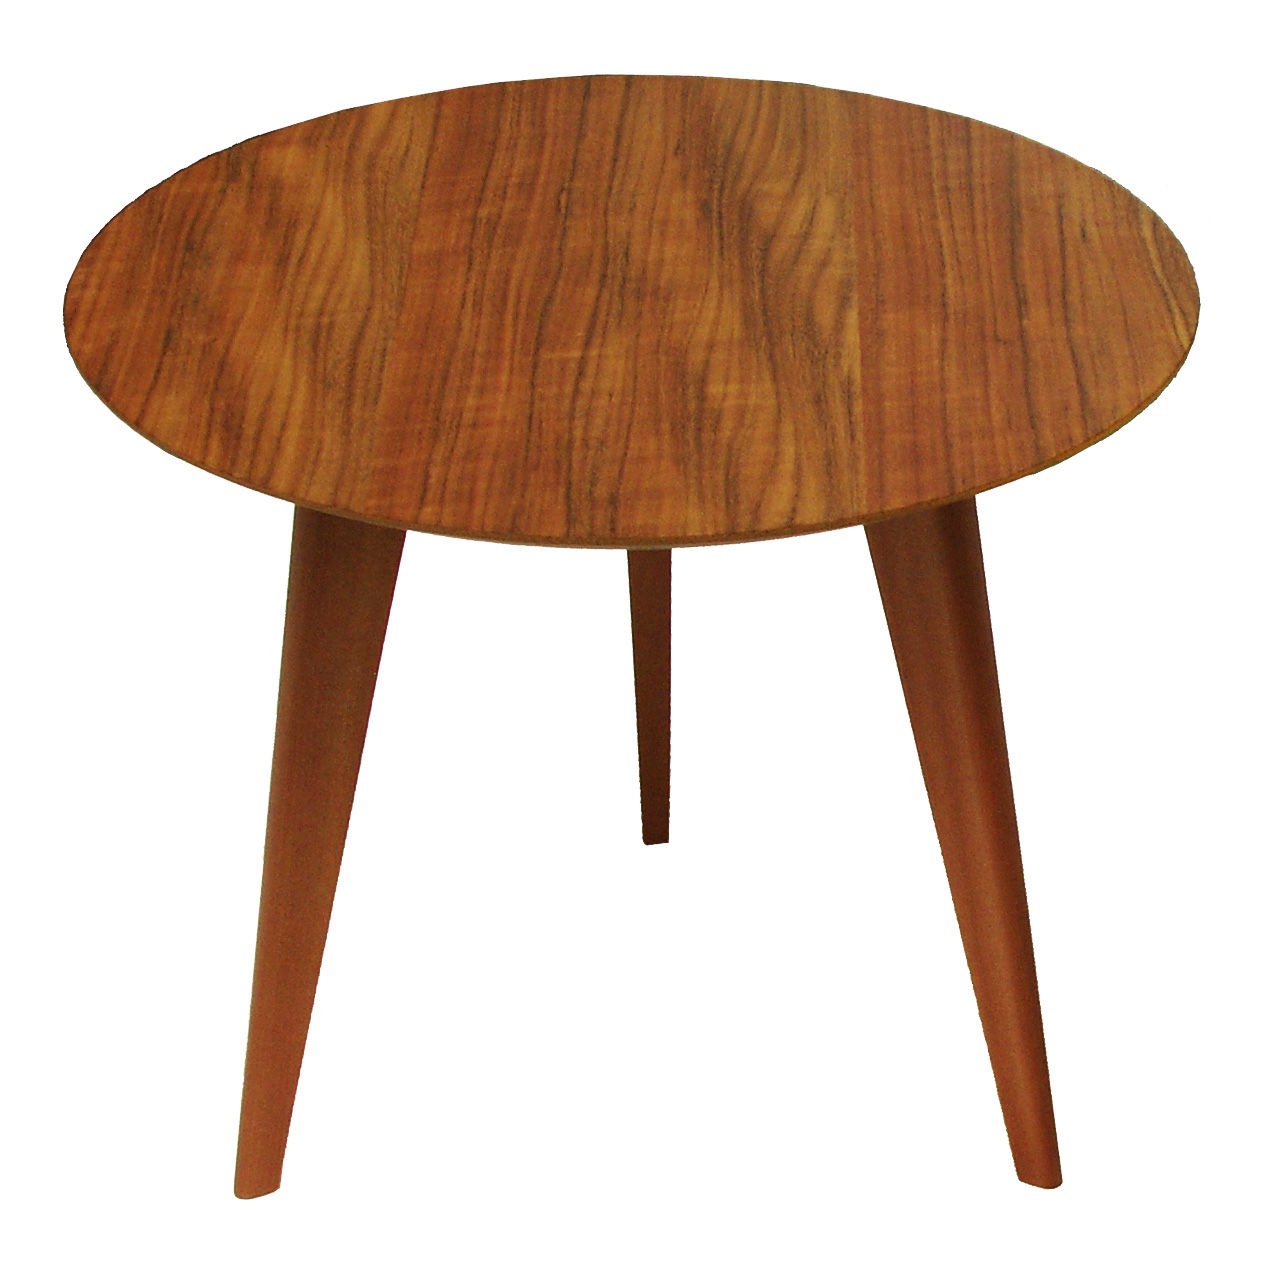 Furniture - Coffee Tables - Lalinde Ronde Coffee table - Round - Small Ø 45 cm / Wood legs by Sentou Edition - Teak / Wood legs - Solid oak, Teak veneer MDF